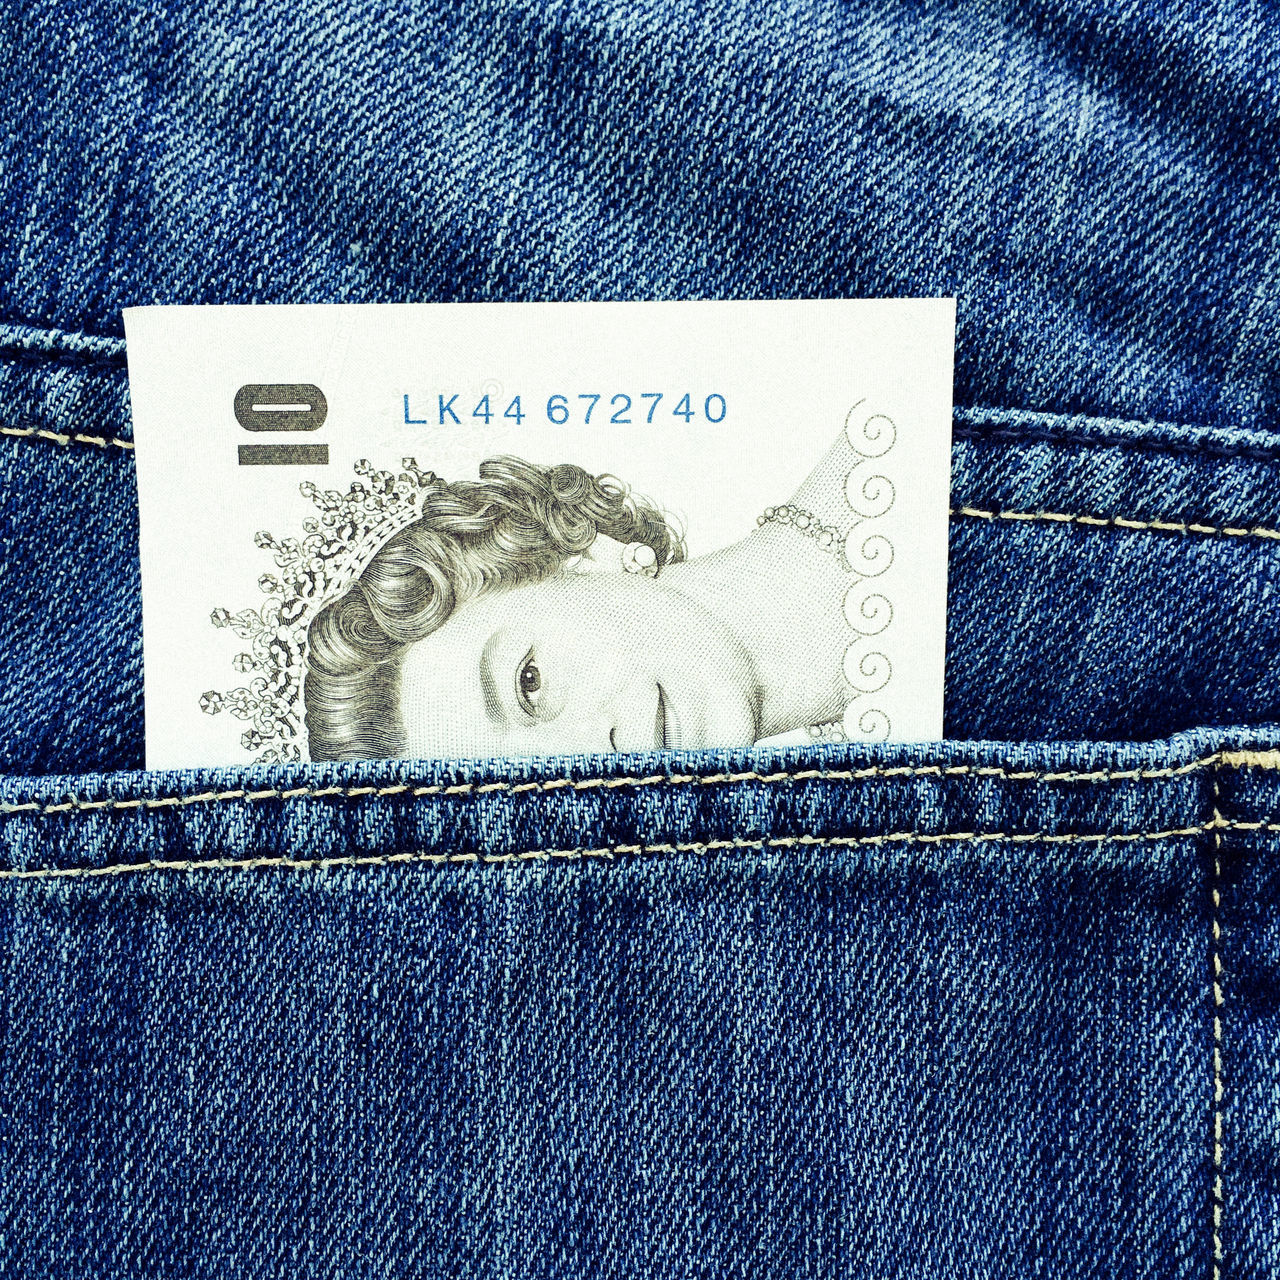 UK 10 pound note protruding from pocket of blue denim jeans 10 Pound Note 10 Pounds Bill Blue Blue Jeans British Cash Currency Denim Jeans Legal Tender Money Note Paper Pocket  Pocket Money Postprocessing Protruding Queen Queen Elizabeth  Queens Head Symbol Ten Pound Note UK£